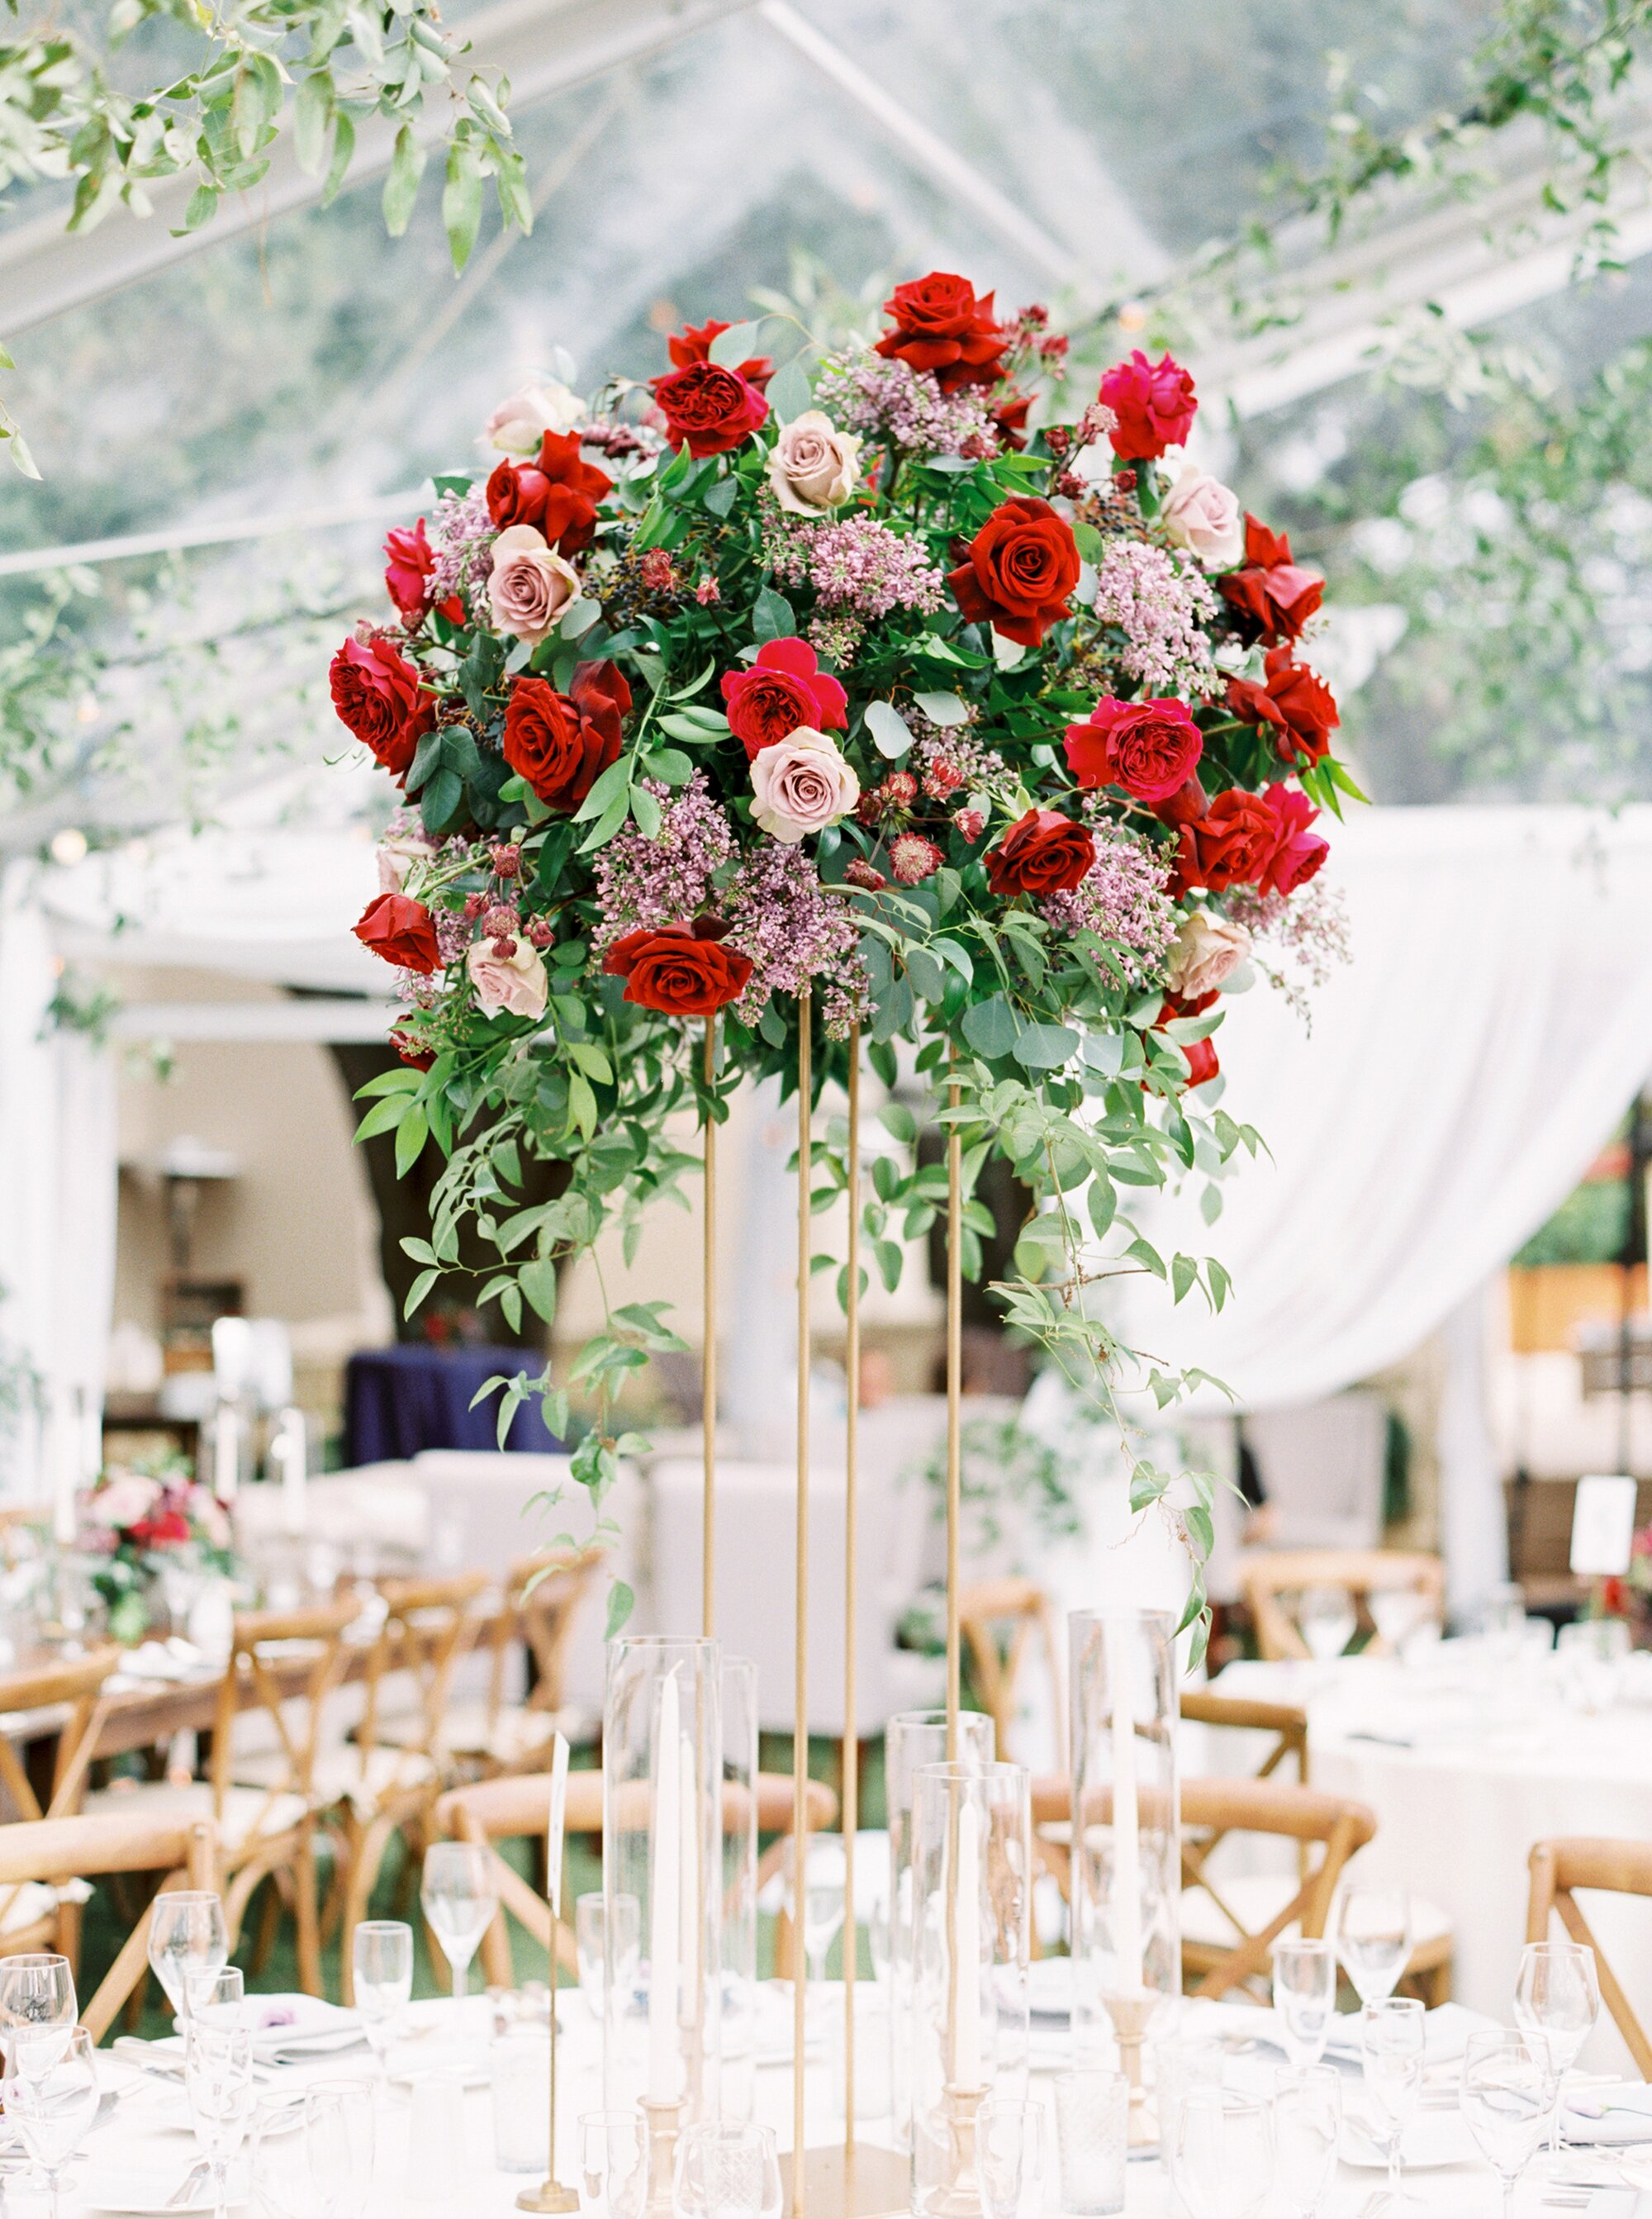 29 Tall Centerpieces That Will Take Your Reception Tables to New ...